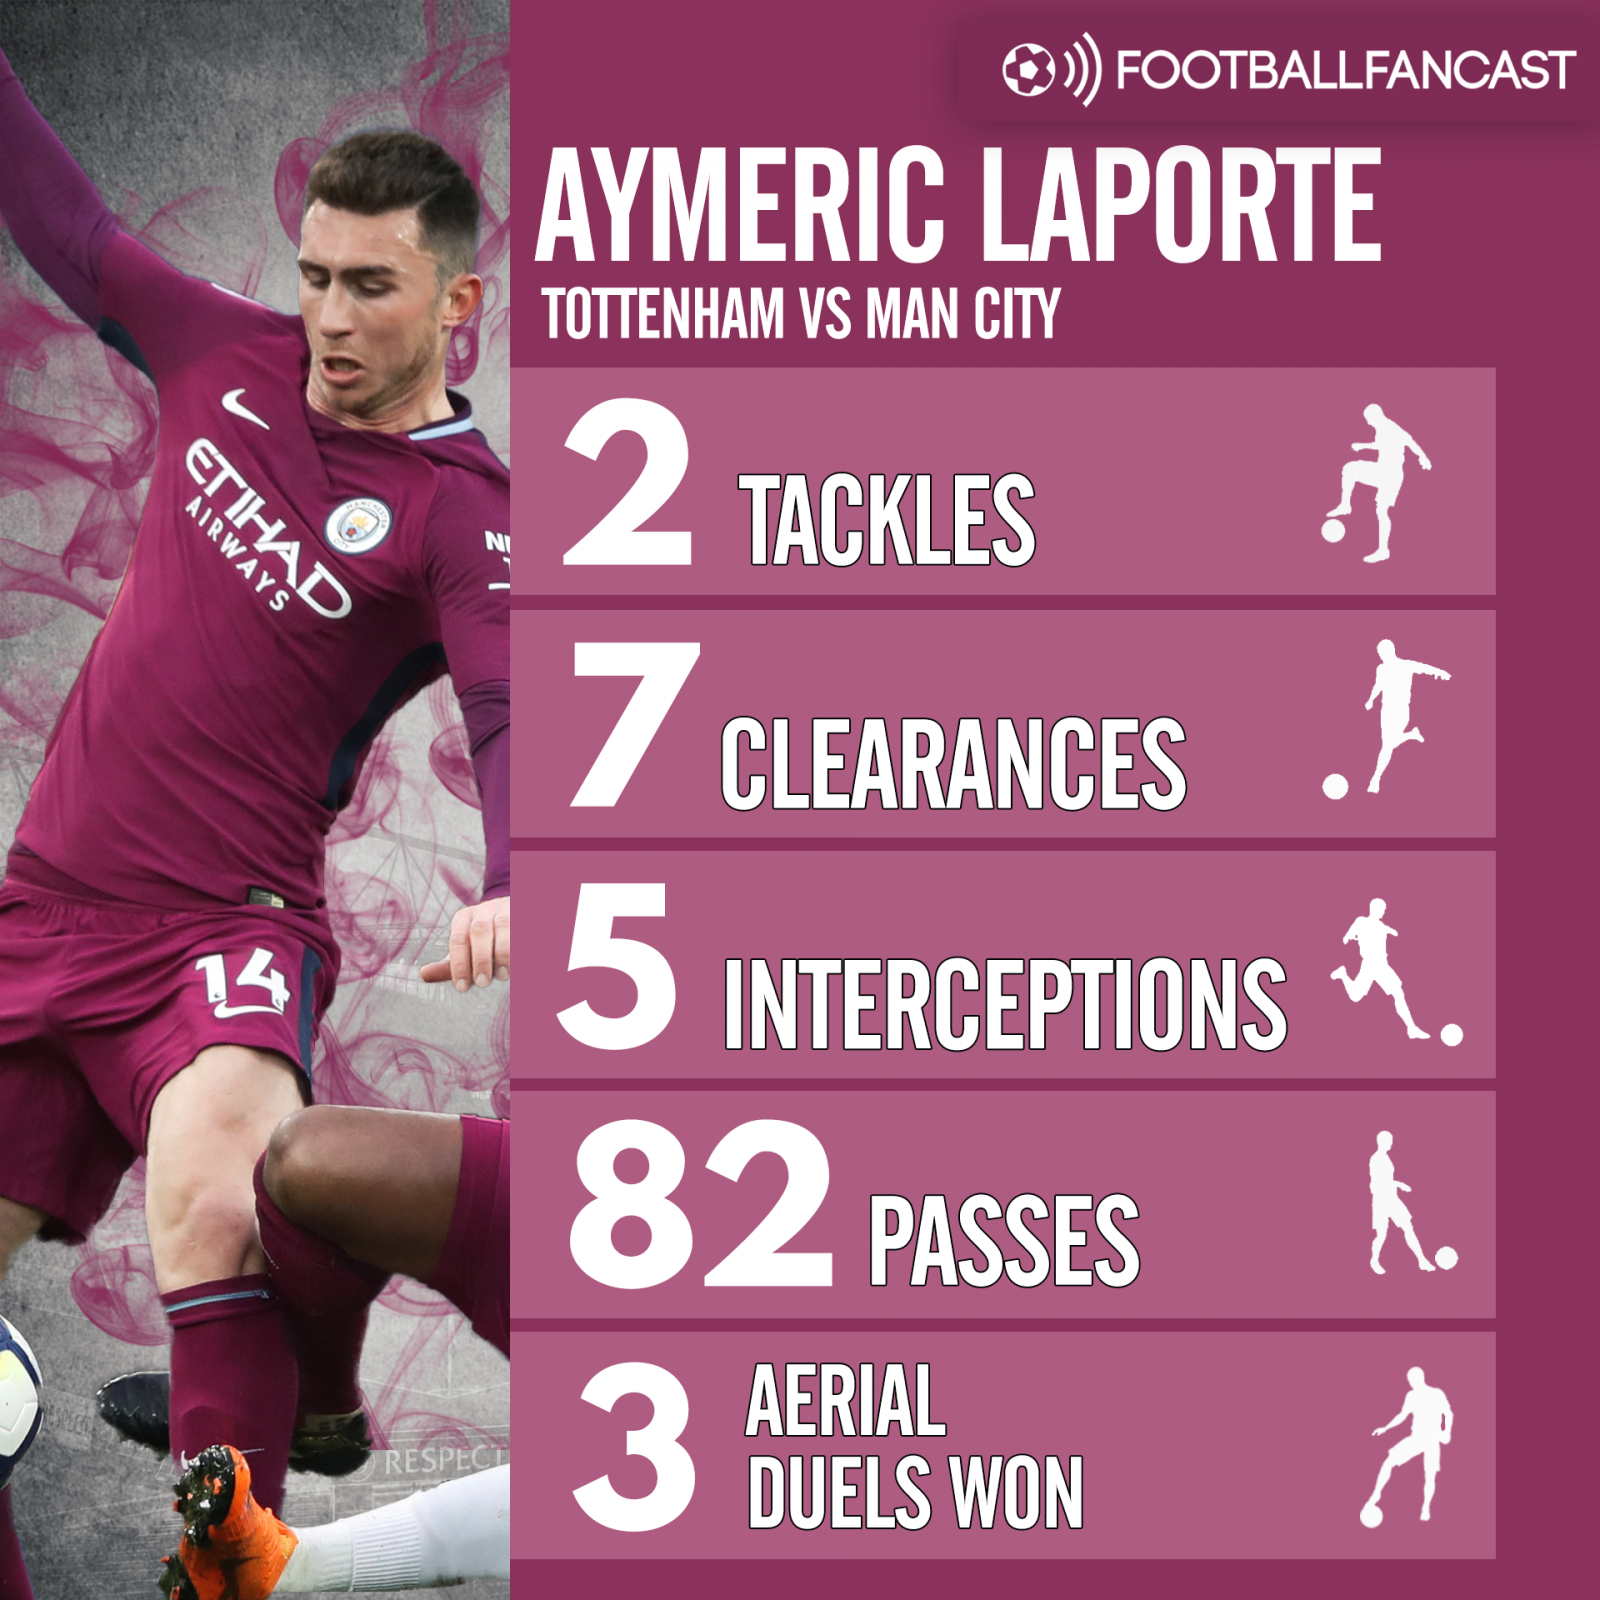 Aymeric Laporte's stats from Man City's 3-1 win over Tottenham